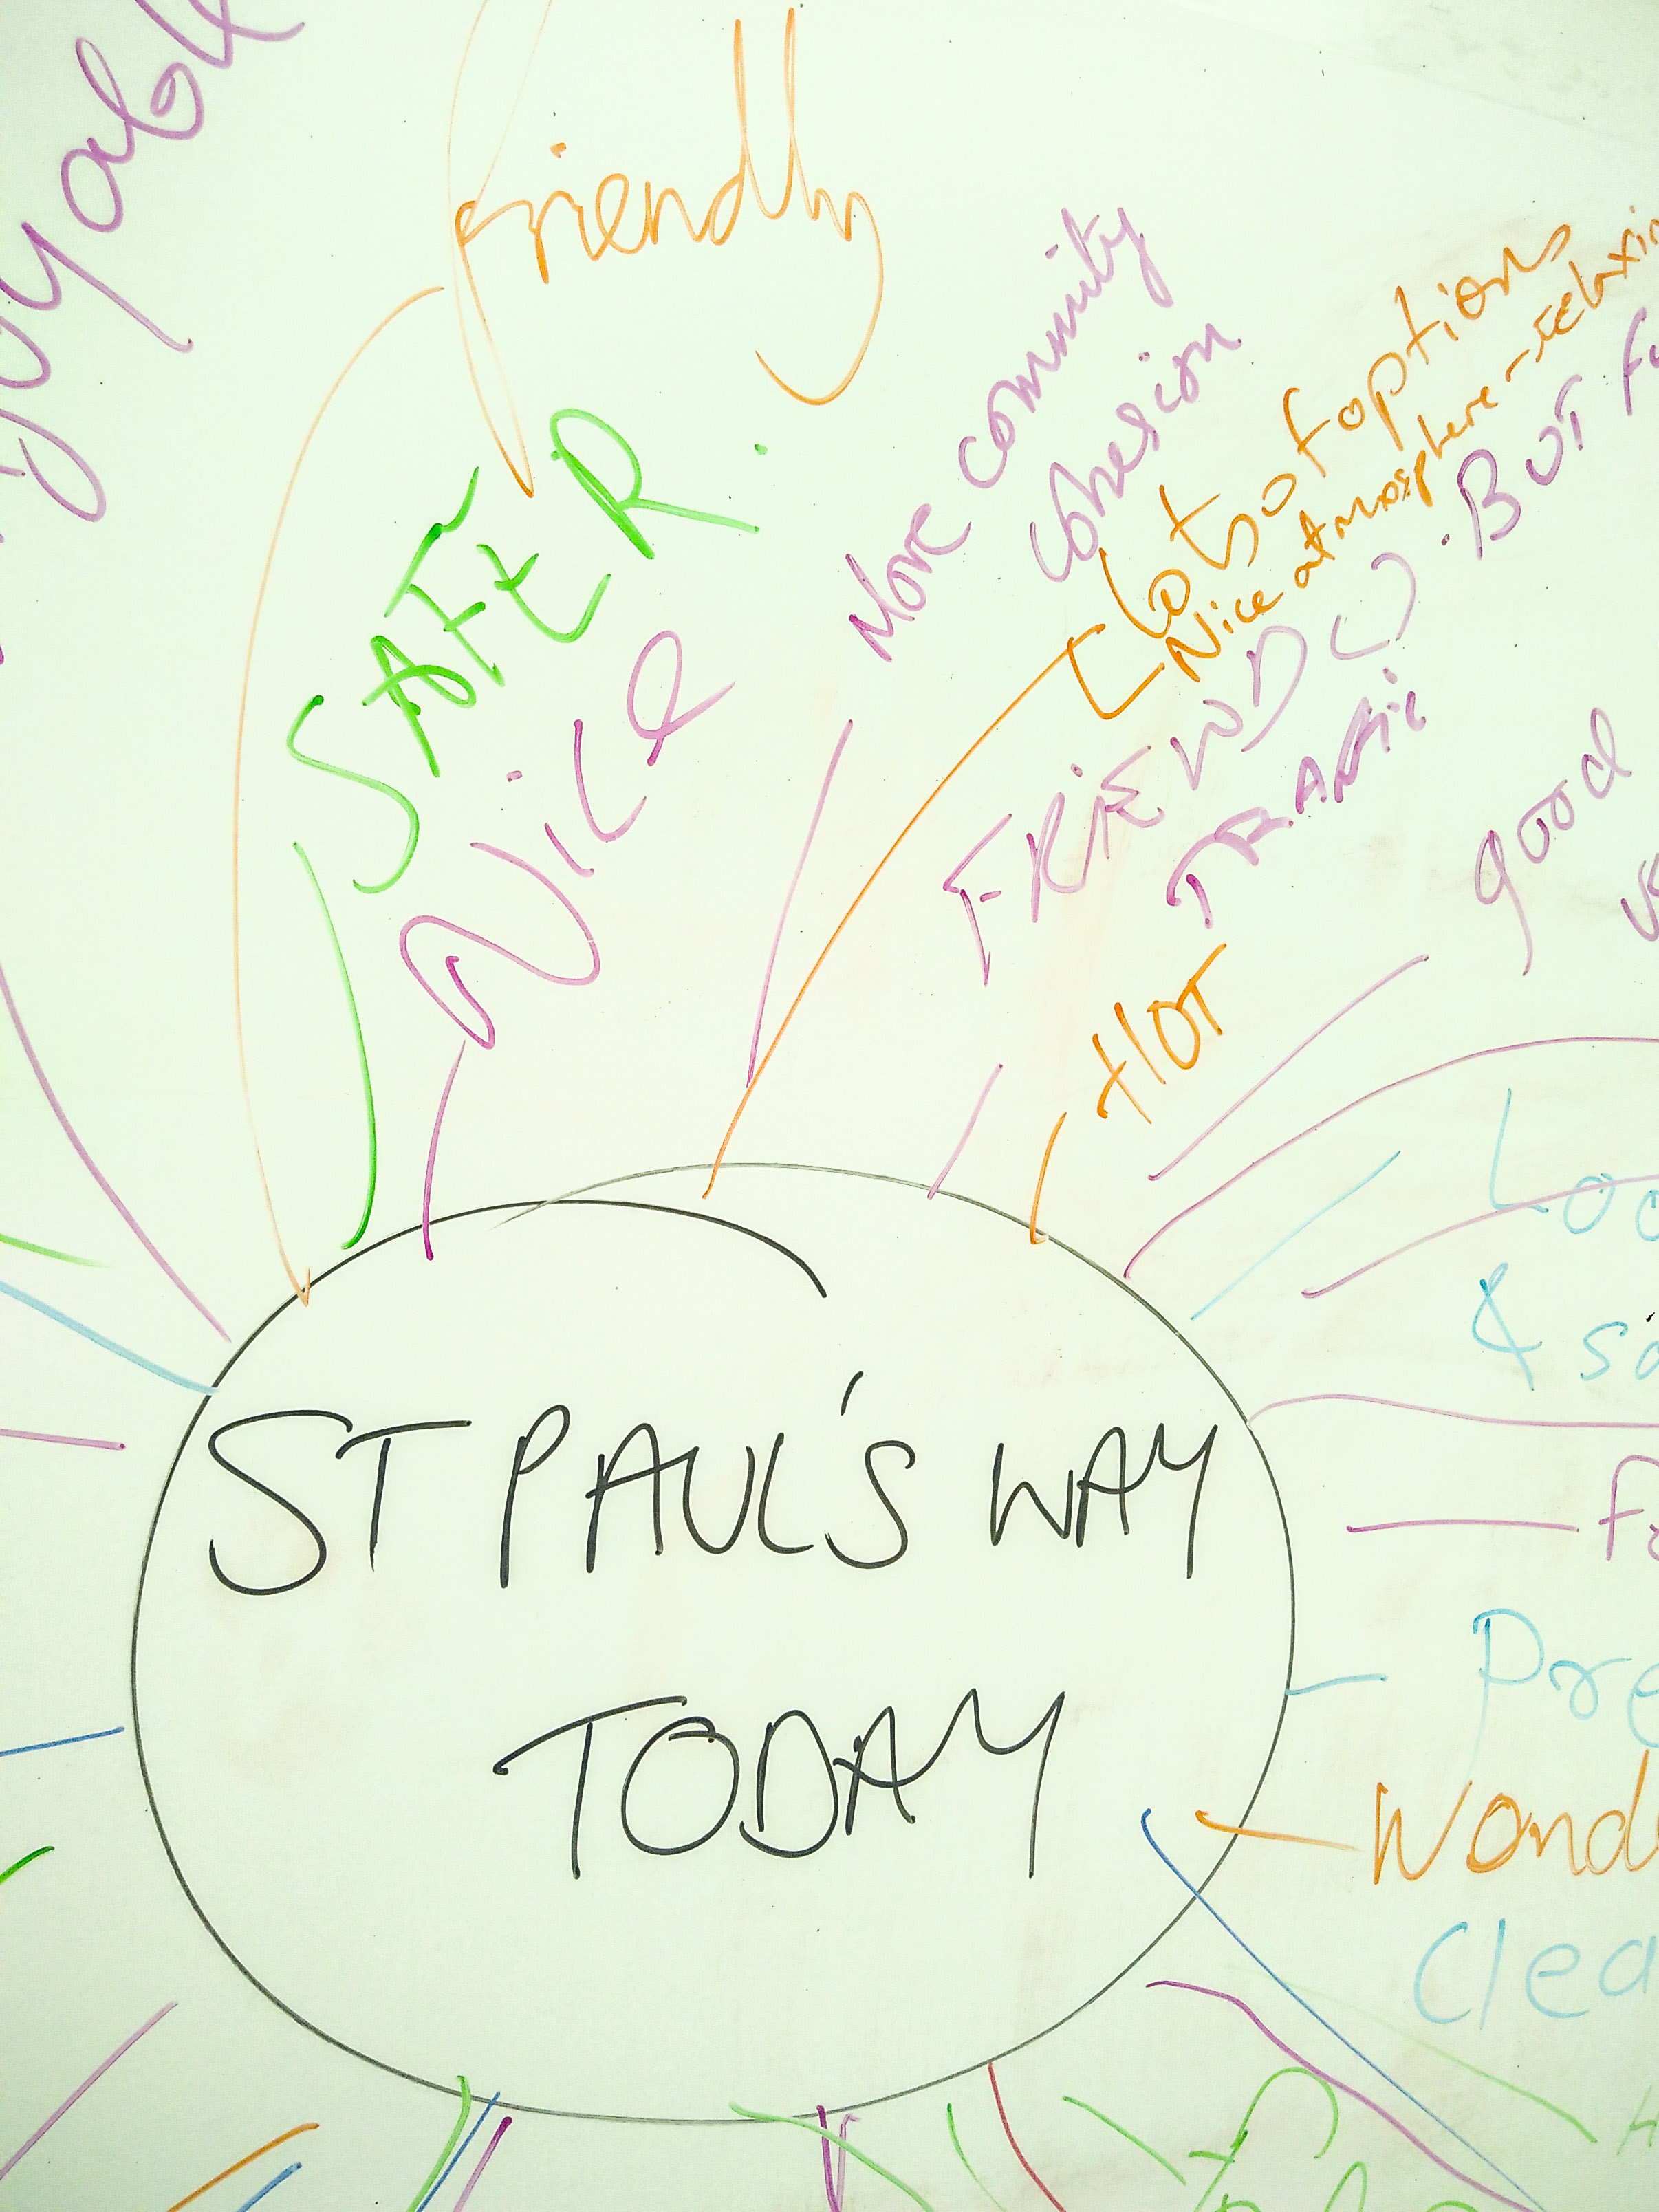 JOIN US AT THE ST PAUL'S WAY FESTIVAL ON SUNDAY 23 JUNE! - DATE: Sunday 23 JuneTIME: 12pm - 4pmLOCATION: St Paul's Way, PoplarOur Reclaiming Streets stall will be hosting conversations with local residents about air quality locally, what the problem is and how we can work together to improve it - come and say hello!There will also be lots of other activities, stalls, food and drink and a stage with live music - lots of enjoy.This image is a brainstorm of people's reactions to the festival in 2018, where for the first time we closed the street to traffic completely.